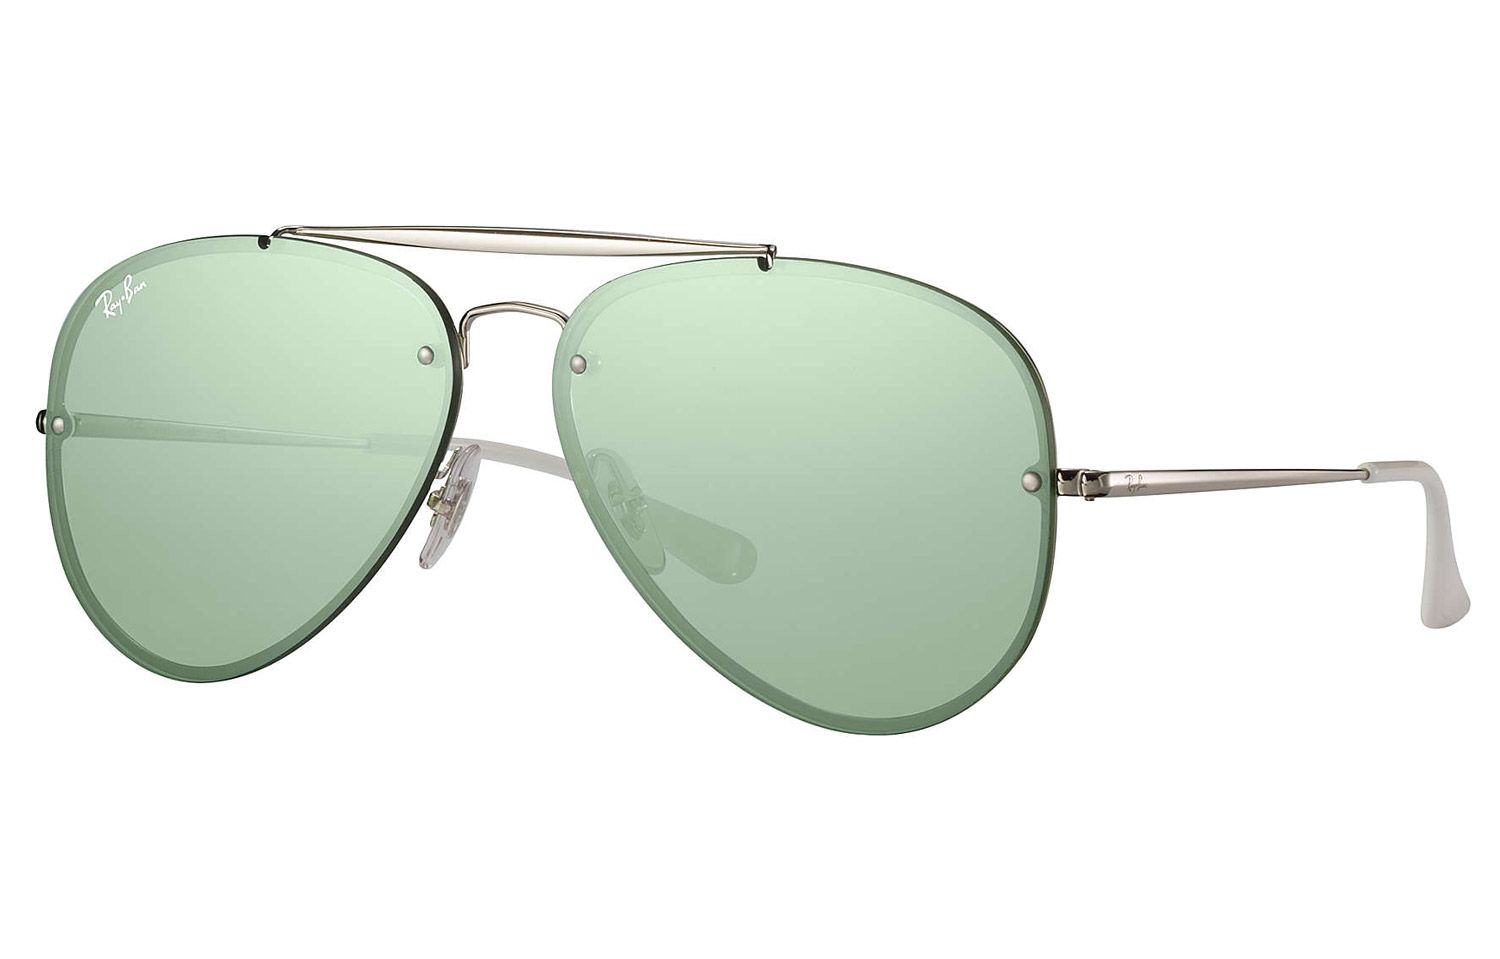 f3fc8964f2 Ray-Ban Blaze Aviator Silver And Dark Green Mirror Sunglasses - RB3584N 905130  61-